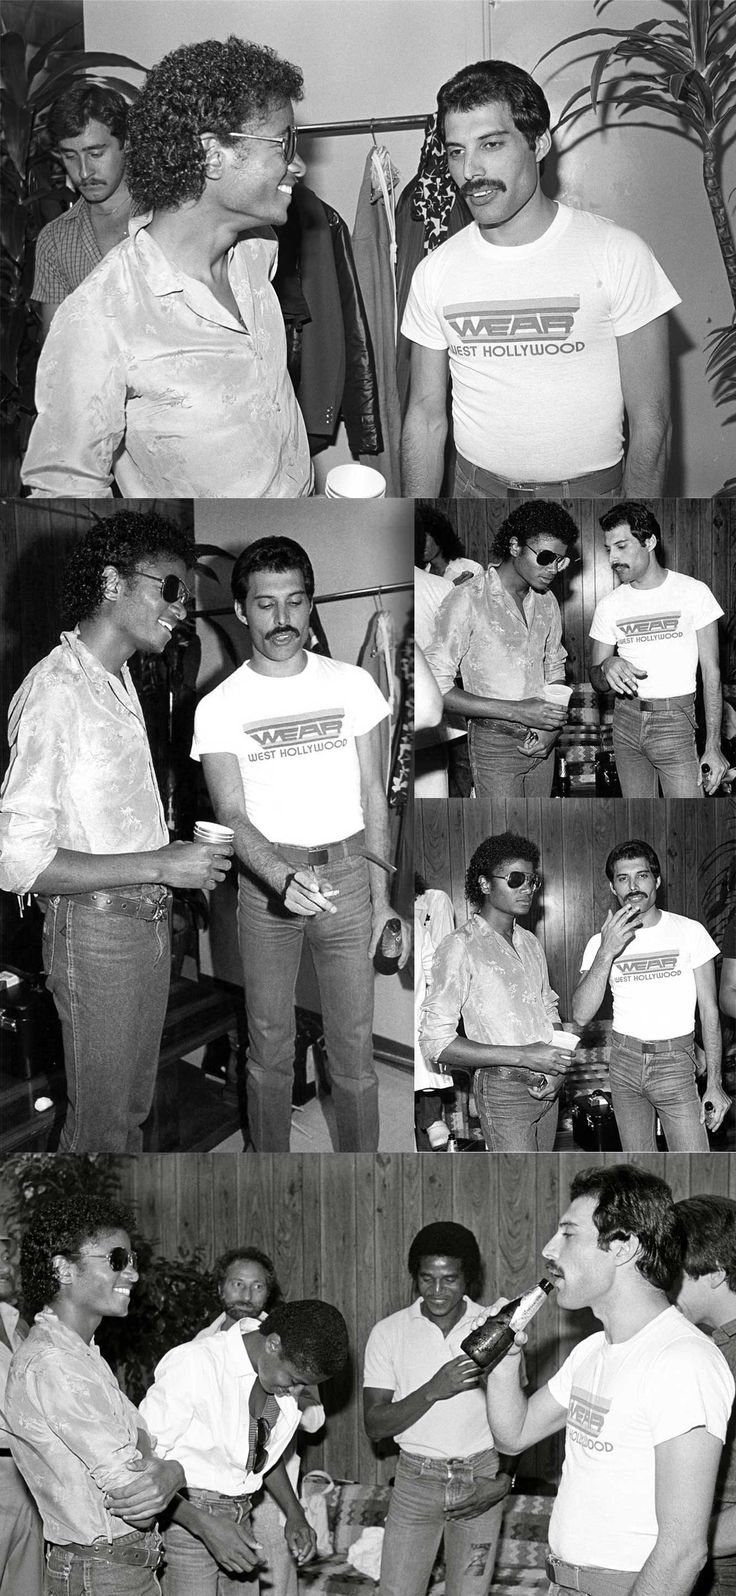 Michael Jackson and Freddie Mercury ;) 2 geniuses! ... My all-time favorite artist/humanitarian/human being King of Pop, Rock and Soul ;) with vocalist of my favorite band (Queen) together at a friendly atmosphere. I love these pics! - Cuteness in black and white ღ @carlamartinsmj